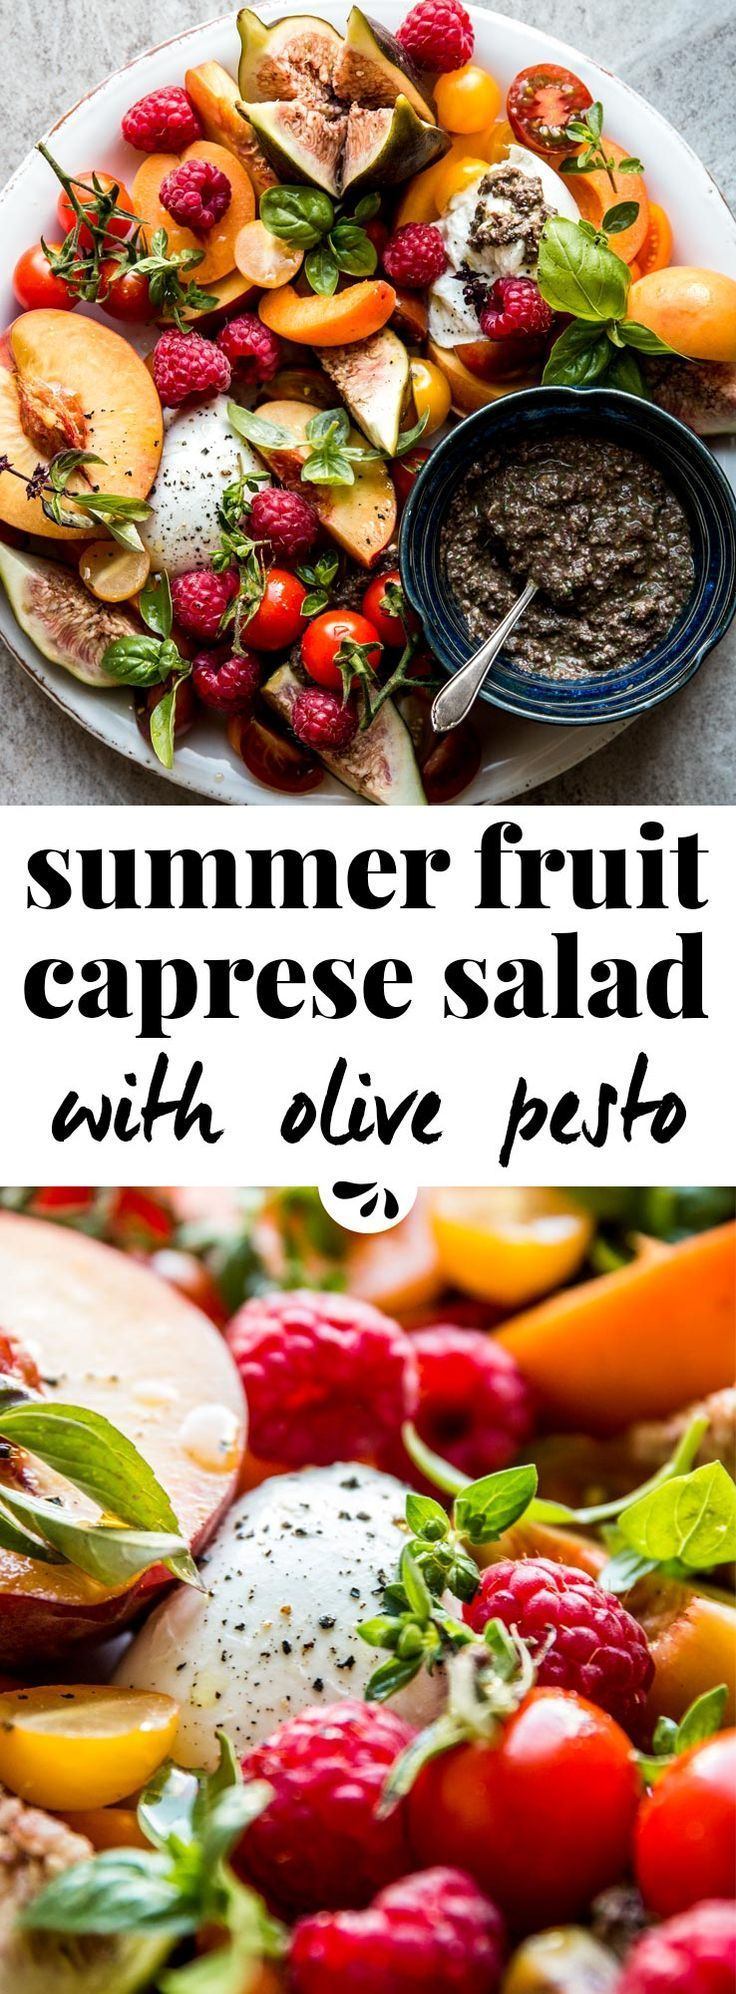 This summer fruit caprese salad is healthy, easy, simple & full of fresh produce. Cherry tomato, peach, raspberry, figs and more stone fruit turn it into the best with buffalo mozzarella or burrata. Traditional Italian caprese doesn't have a dressing with balsamic vinegar. Instead, serve with black olive and basil pesto on the side. The perfect meal with a loaf of ciabatta bread and some prosciutto. Arranged on a platter for nice presentation, great to impress a crowd at your next dinner par